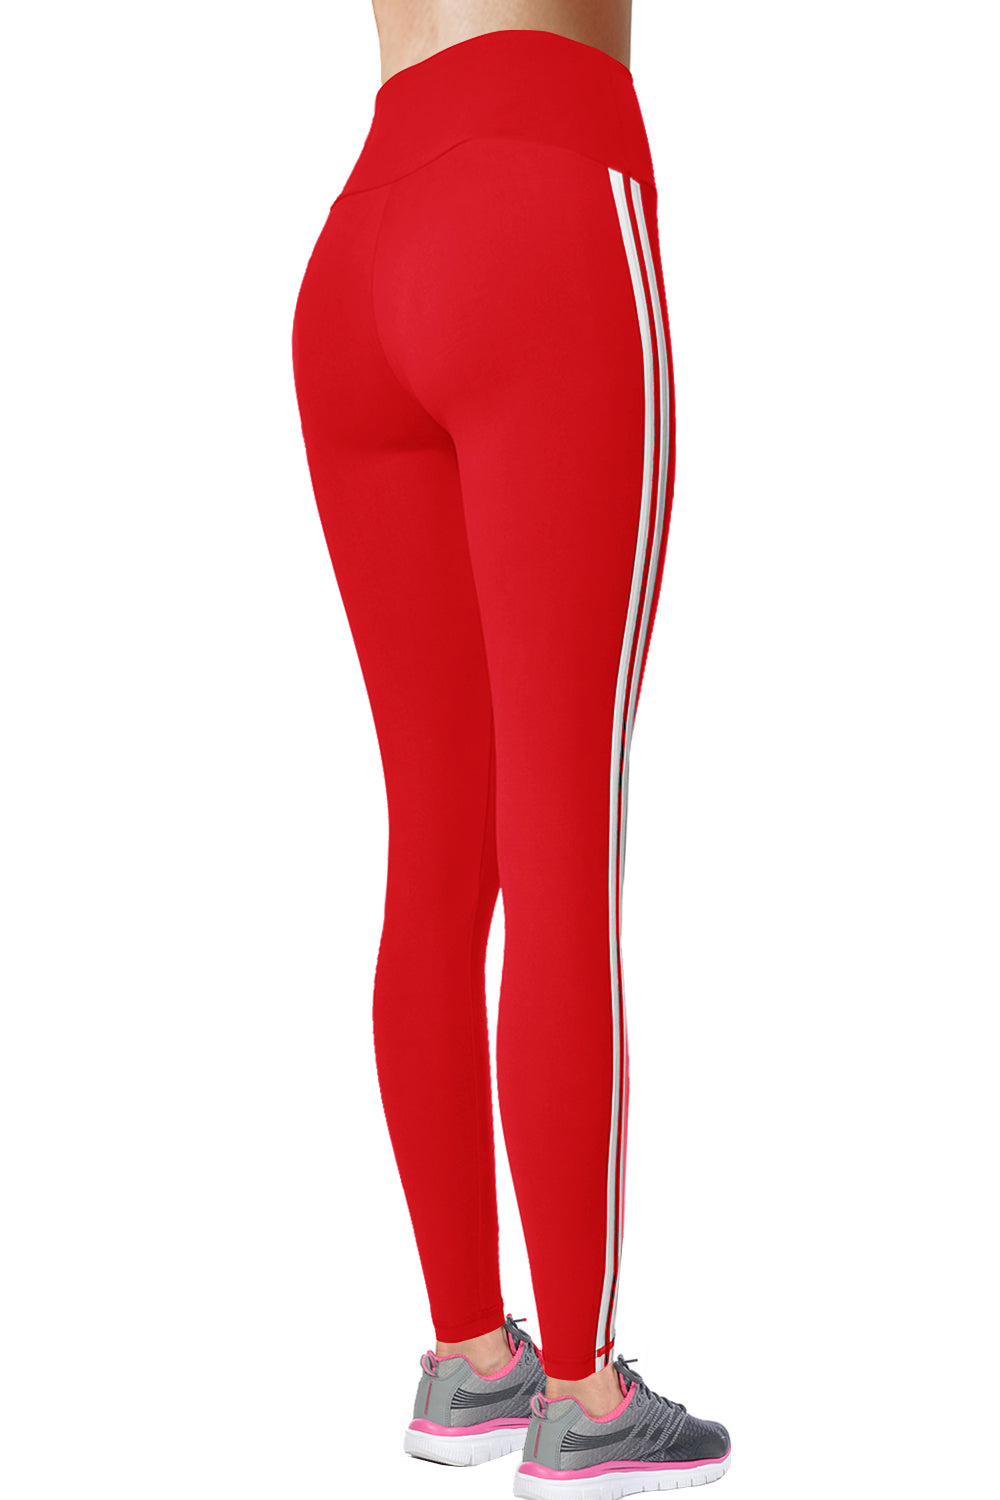 VIV Collection STRIPED Signature Leggings Ultra Soft and Strong Tension Elastic YOGA MID WAIST w/ Hidden Pocket